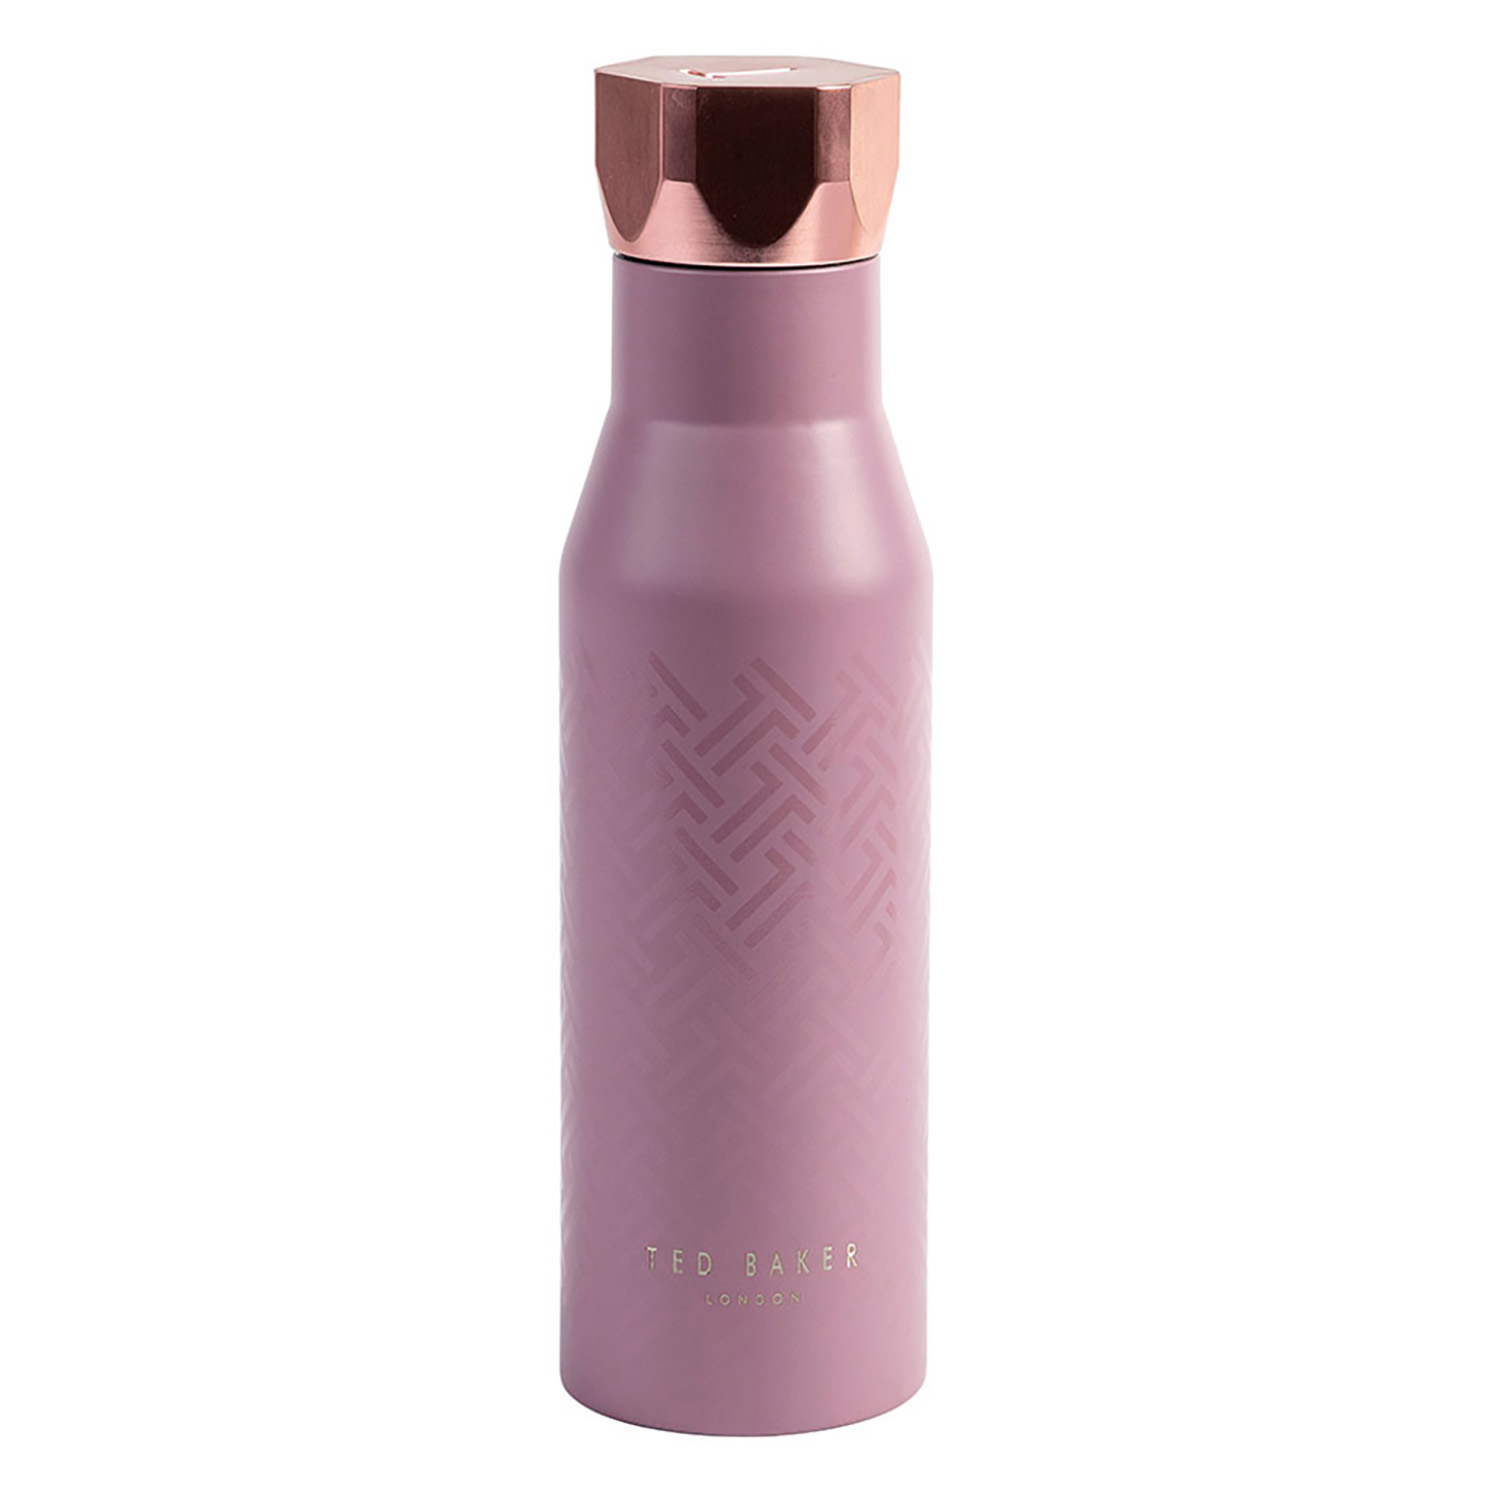 Ted Baker – Dusky Pink Stainless Steel Hexagonal Lid Insulated Water Bottle – 425ml